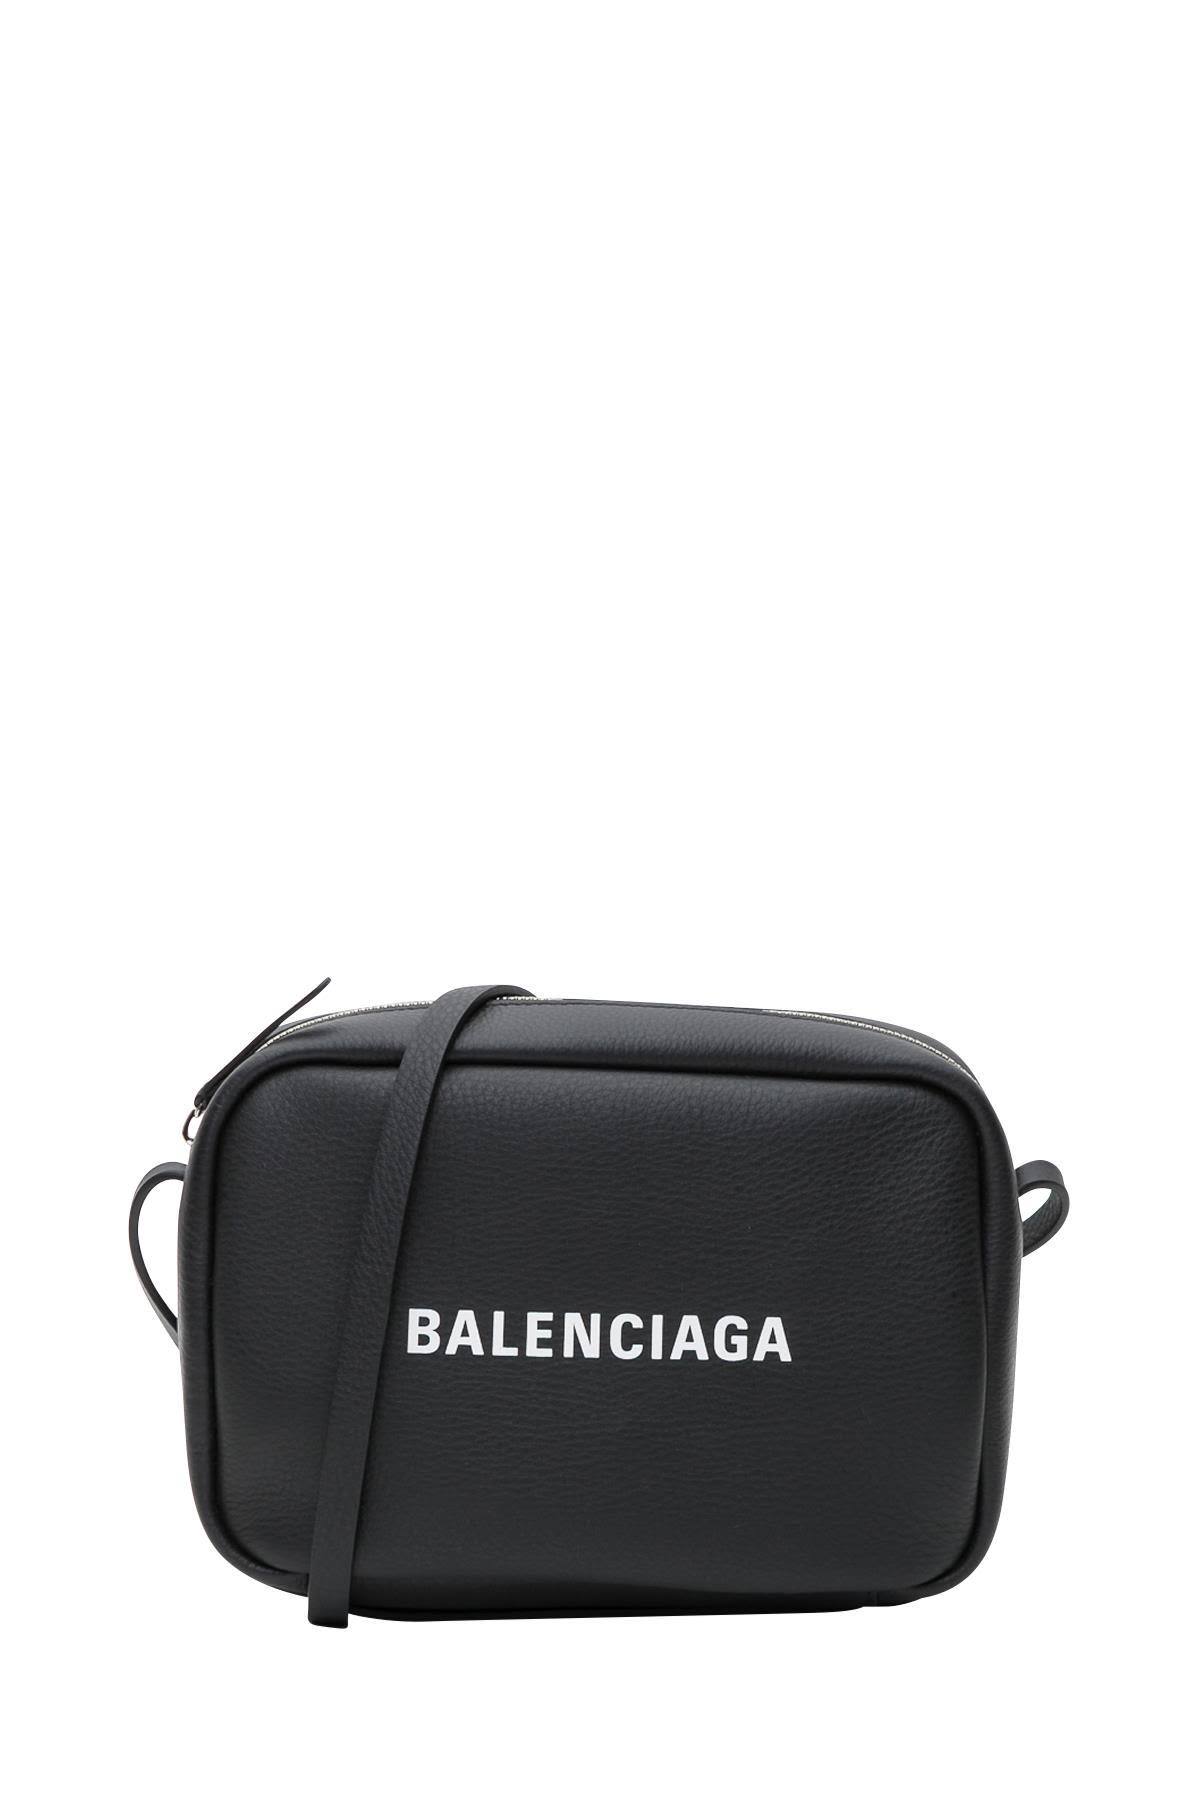 Balenciaga Everyday Camera Bag S In Nero